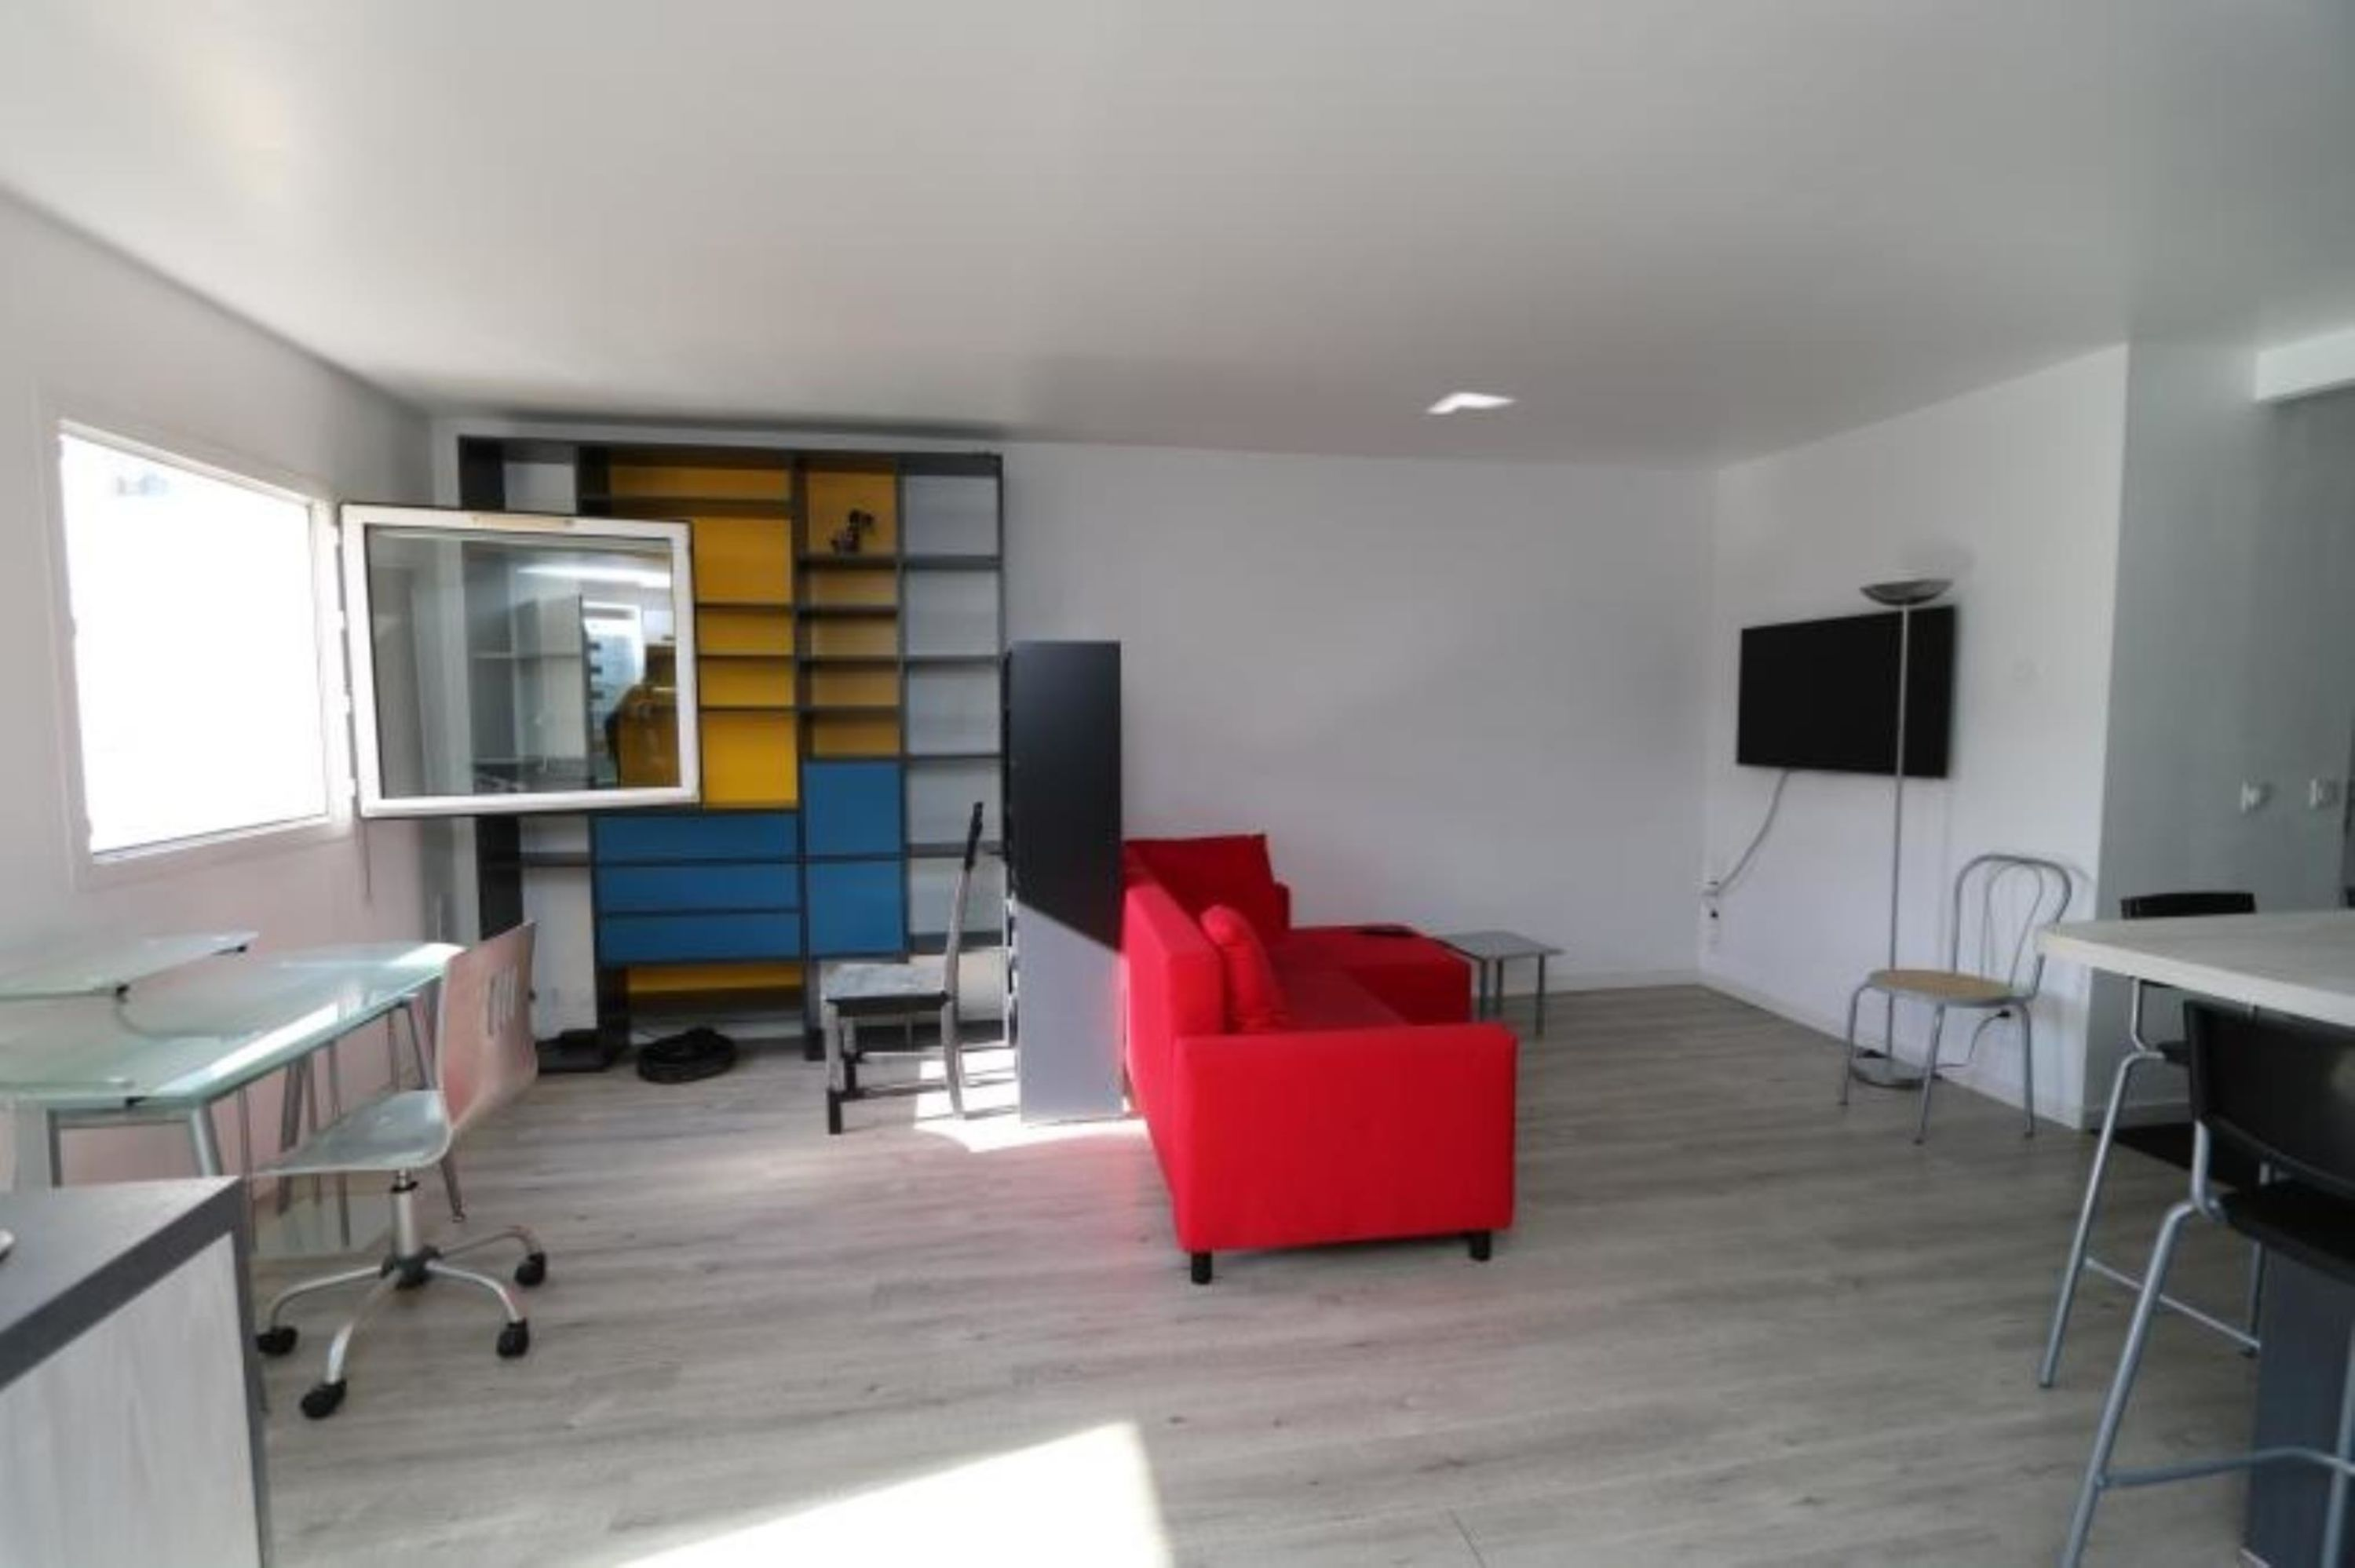 agence immobilière sevres 92 le chesnay 78 achat vente location appartement maison immobilier LMHT ANF XQRMBNFX